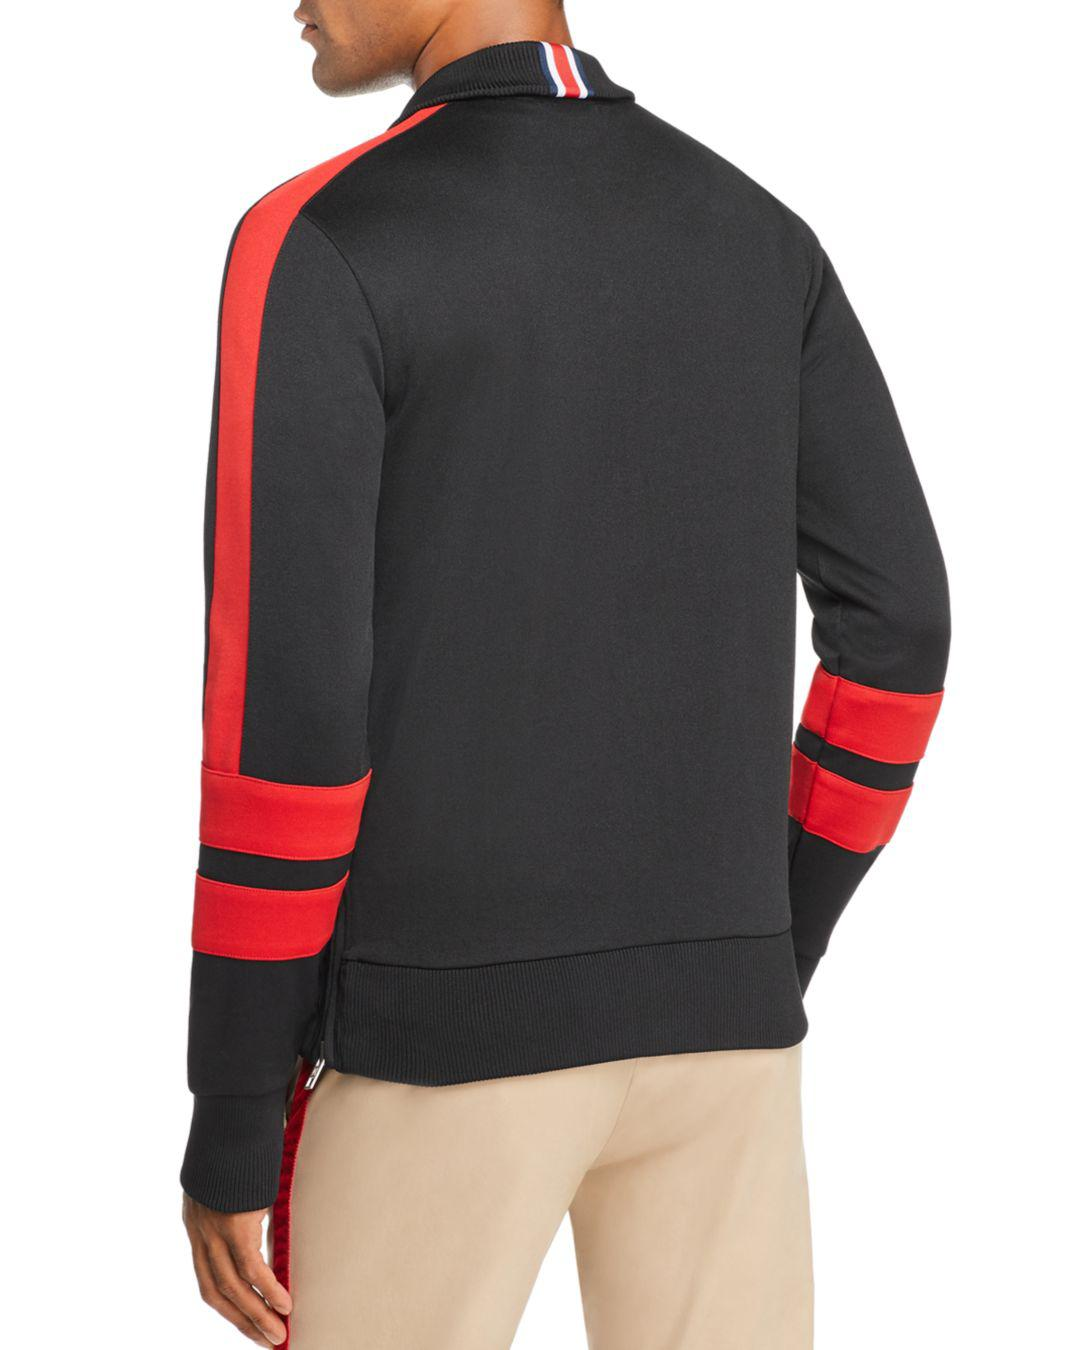 5b7c5d8a76db Tommy Hilfiger X Lewis Hamilton Logo Track Jacket in Black for Men - Save  64% - Lyst